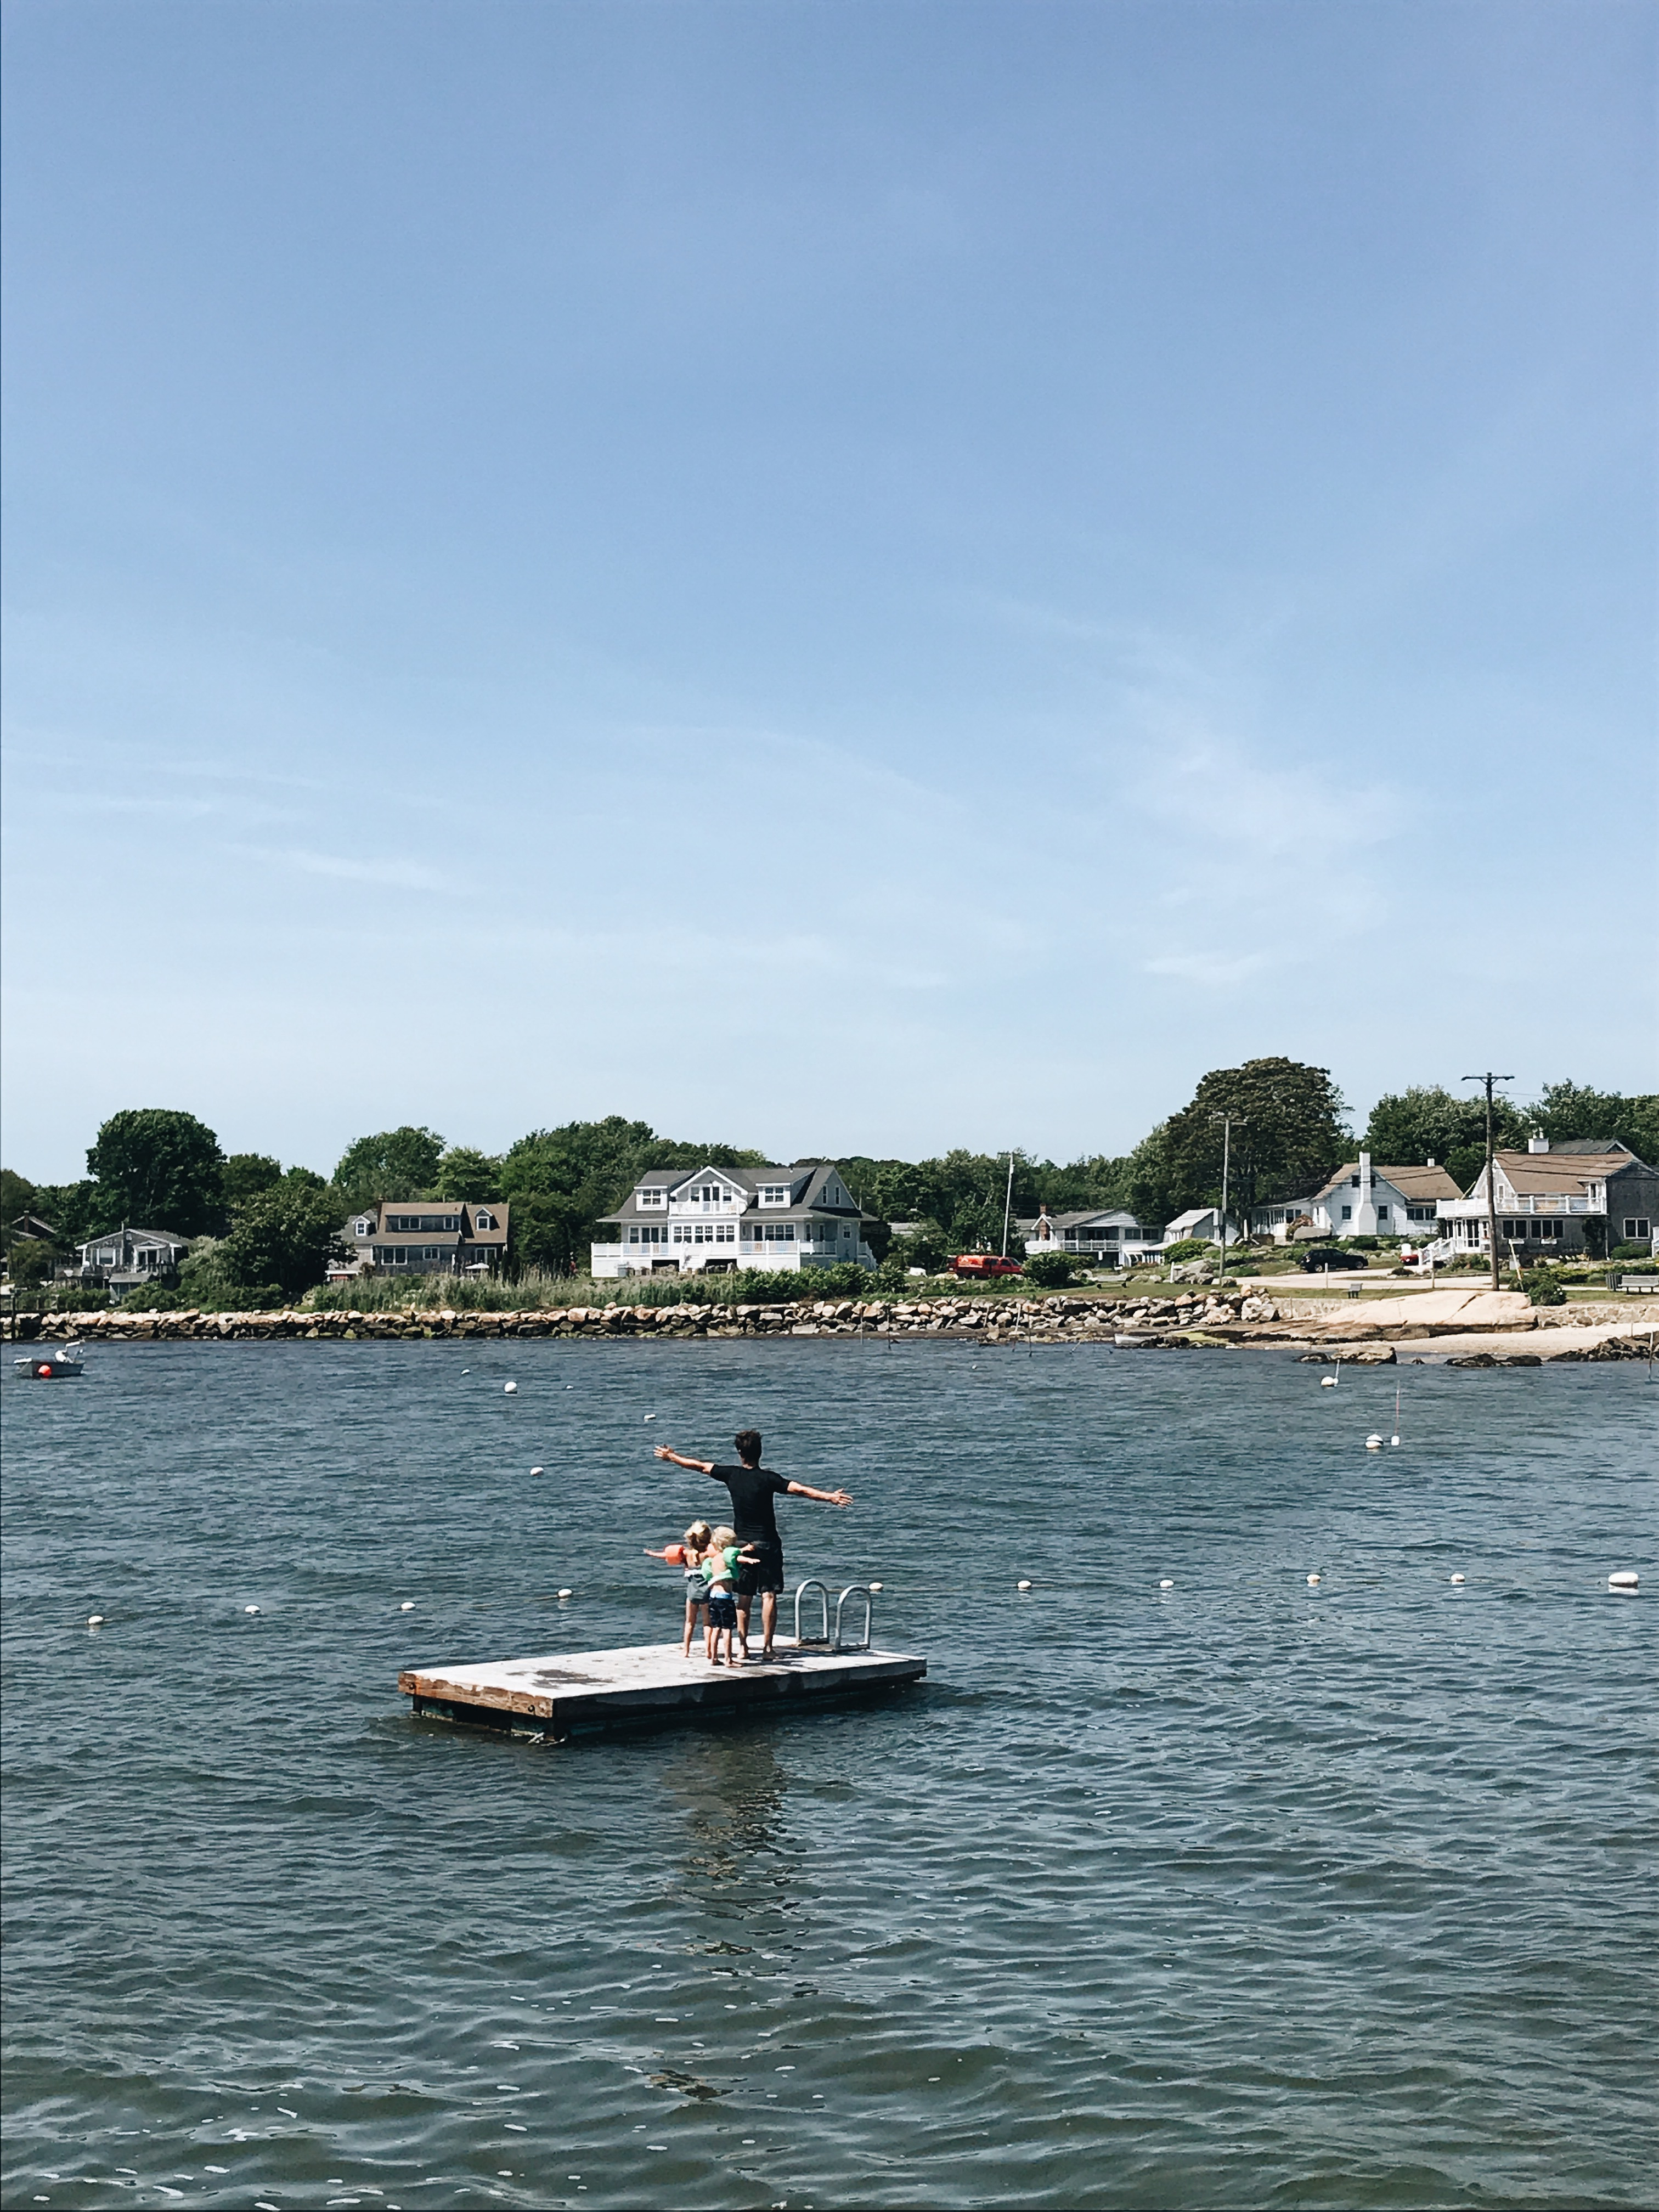 Our Summer in Connecticut